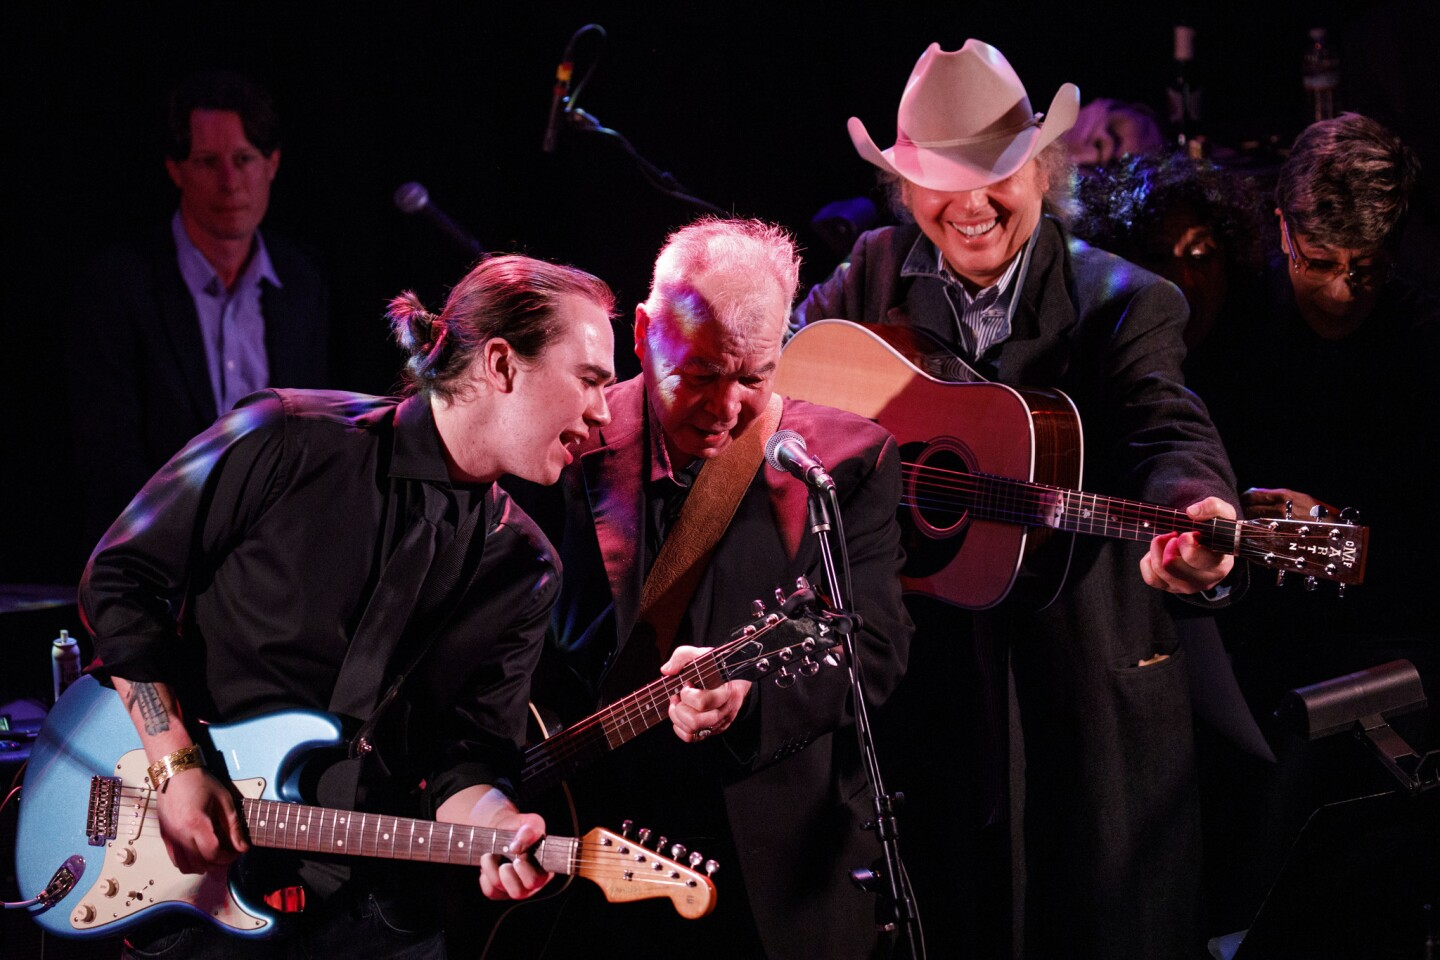 Veteran singer-songwriter John Prine, center, is flanked by his son, Jody, left, and roots country star Dwight Yoakam and soul singer Bettye LaVette during the finale of an all-star Americana tribute to his music Saturday at the Troubadour in West Hollywood.